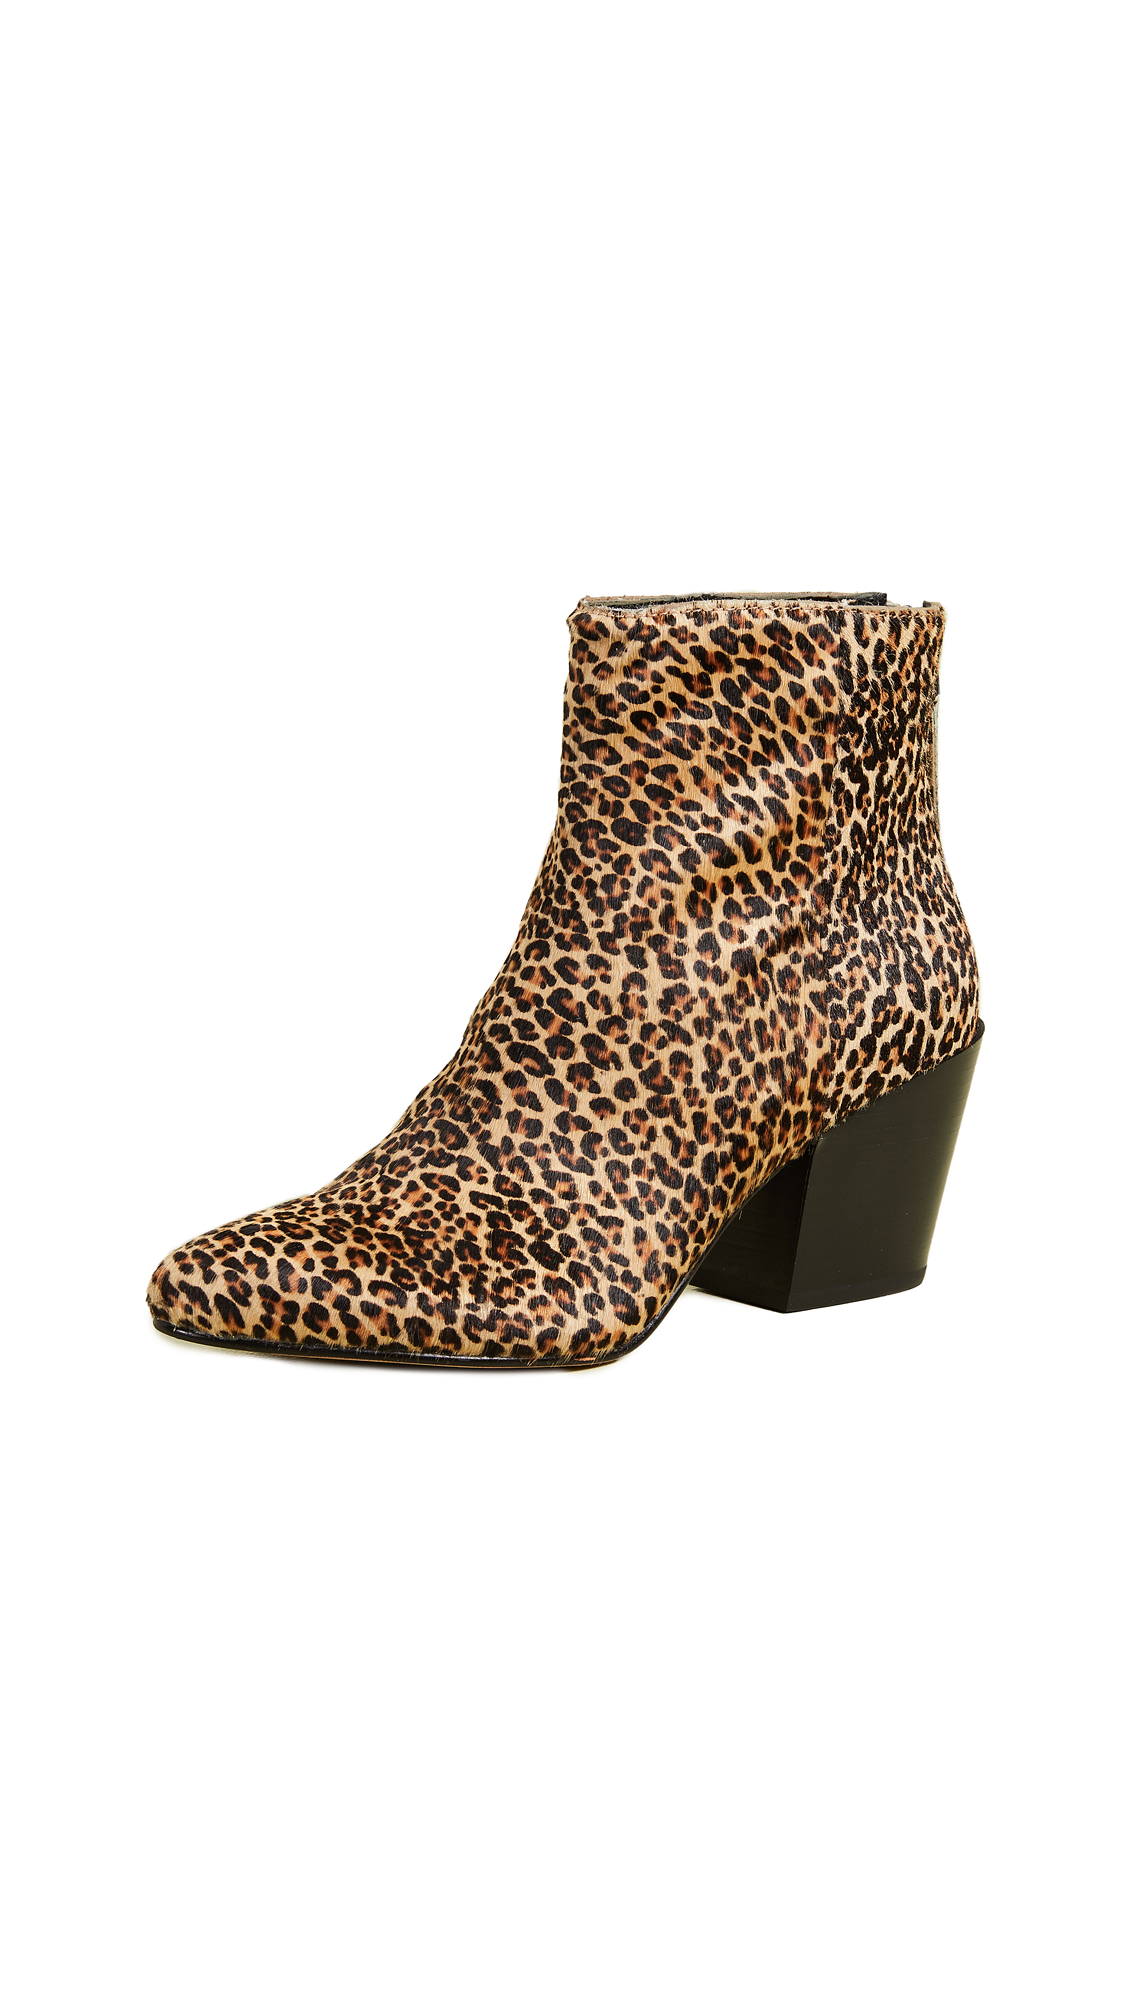 DOLCE VITA Women'S Coltyn Printed Calf Hair Booties in Leopard